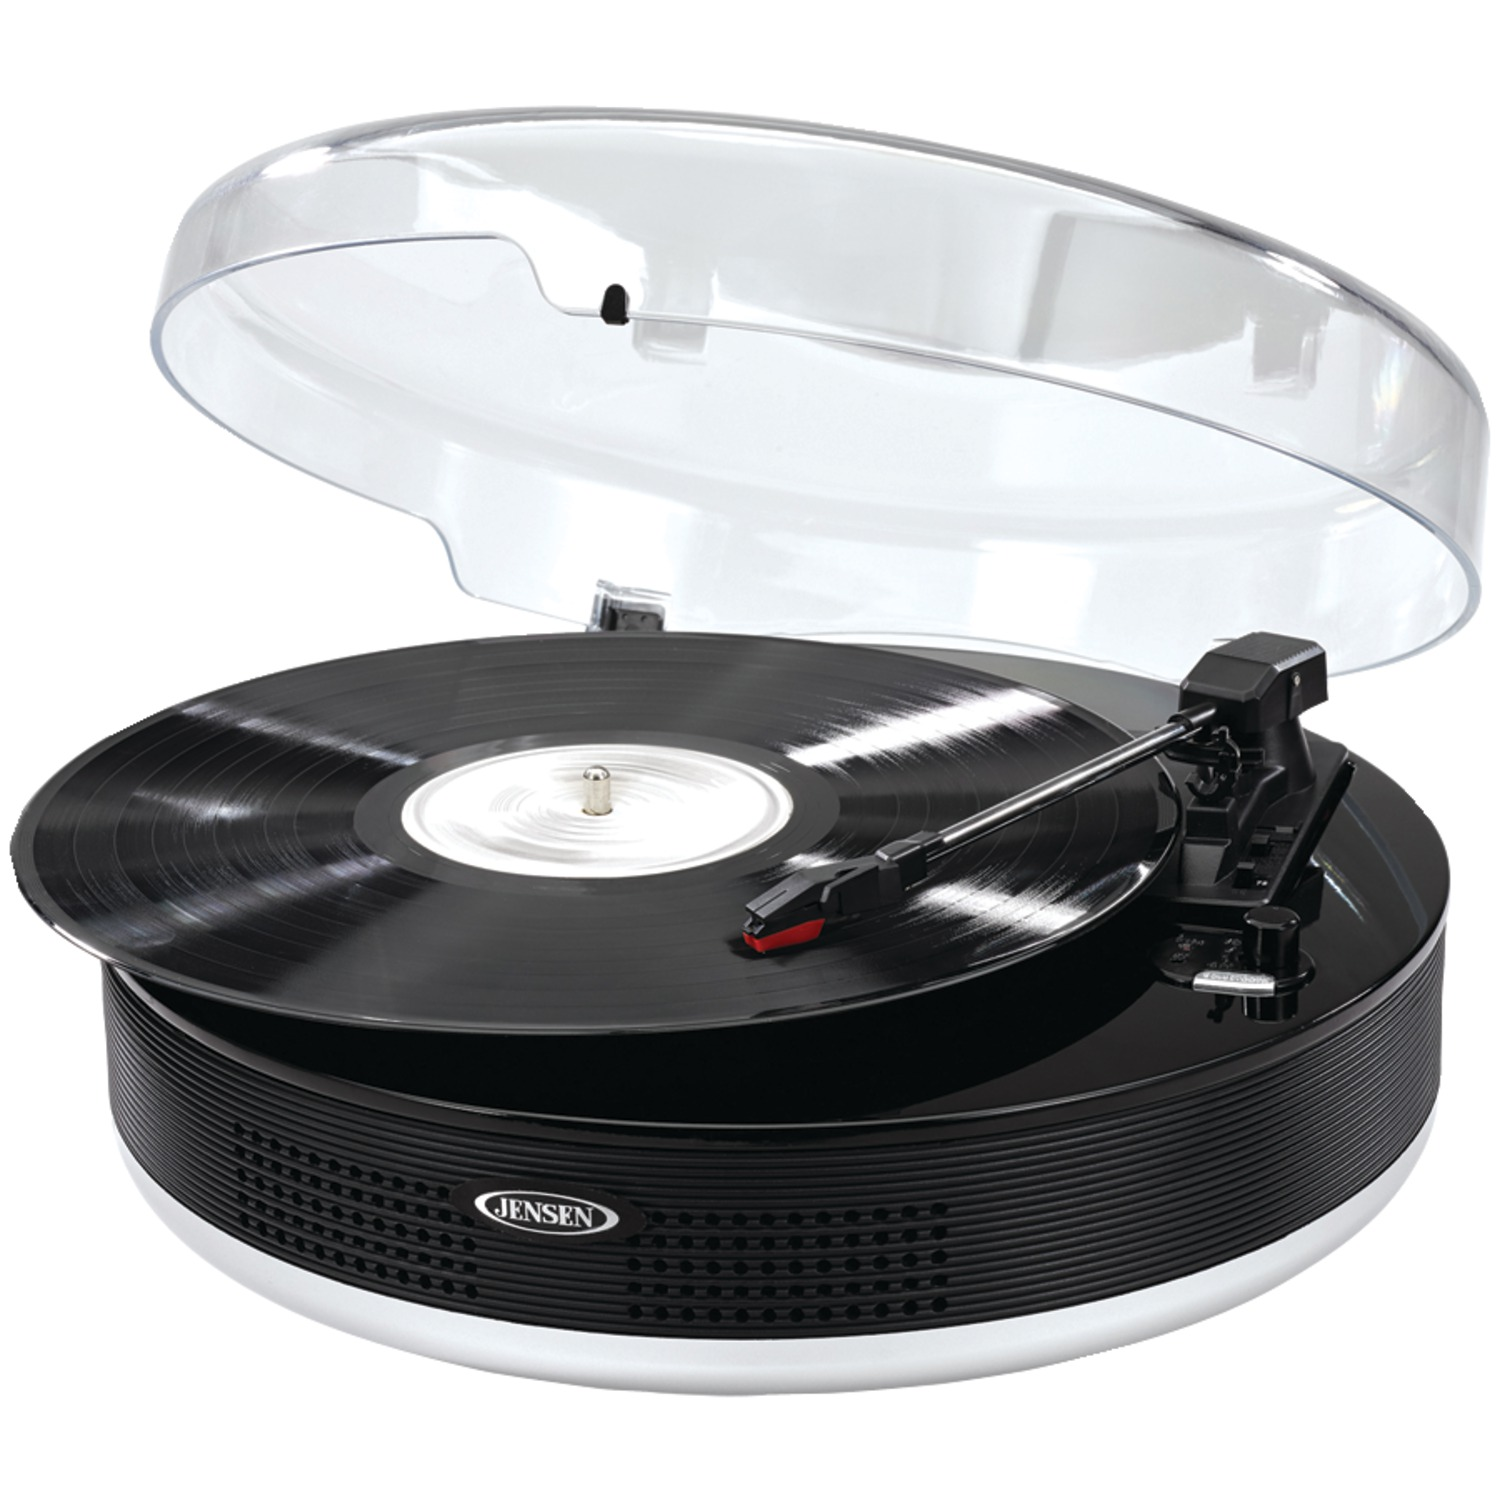 JENSEN JTA 455 Bluetooth(R) 3 Speed Stereo Turntable With Metal Tone